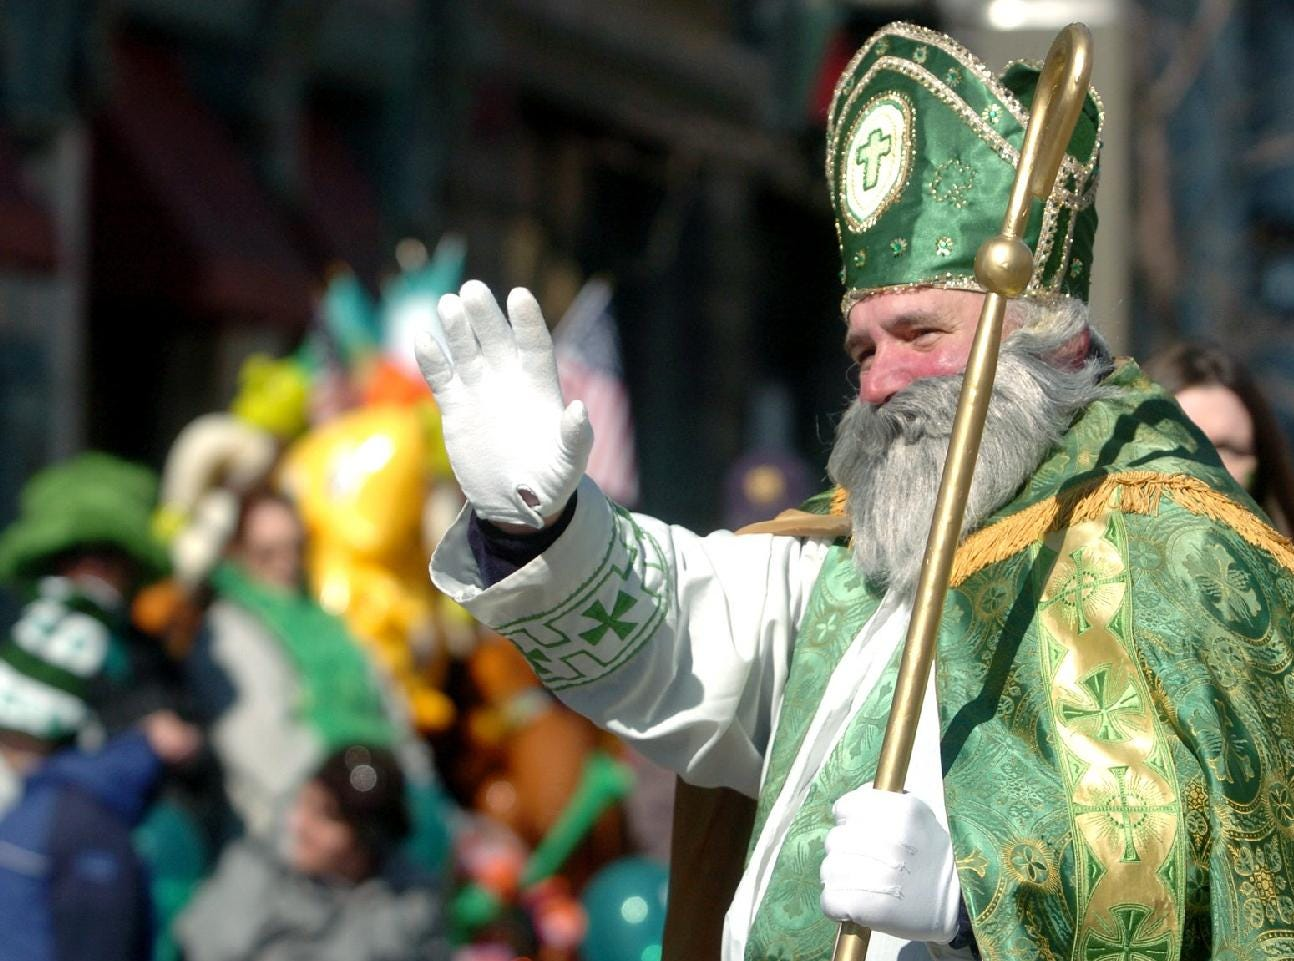 2005: St. Patrick made an appearance at the St. Patrick's Day parade Saturday in Binghamton.